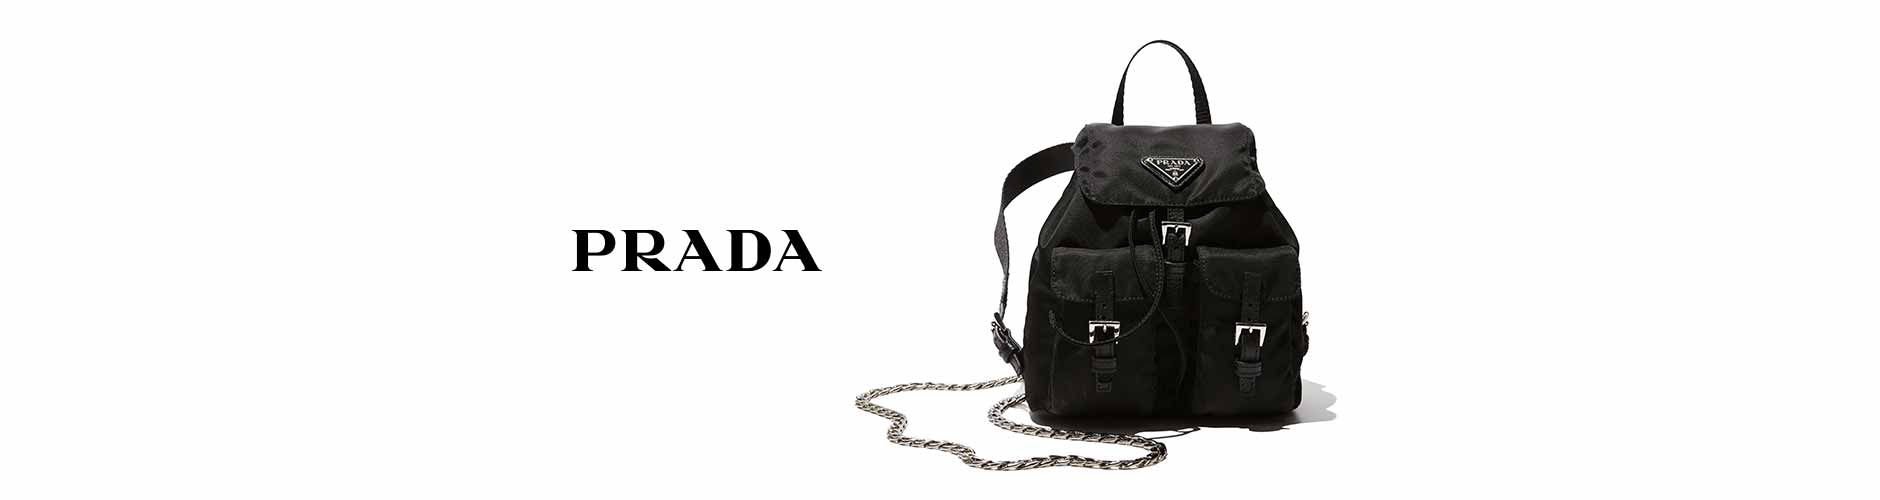 Prada Women\u0026#39;s Handbags - Bergdorf Goodman - prada frame bag white + marble gray + black